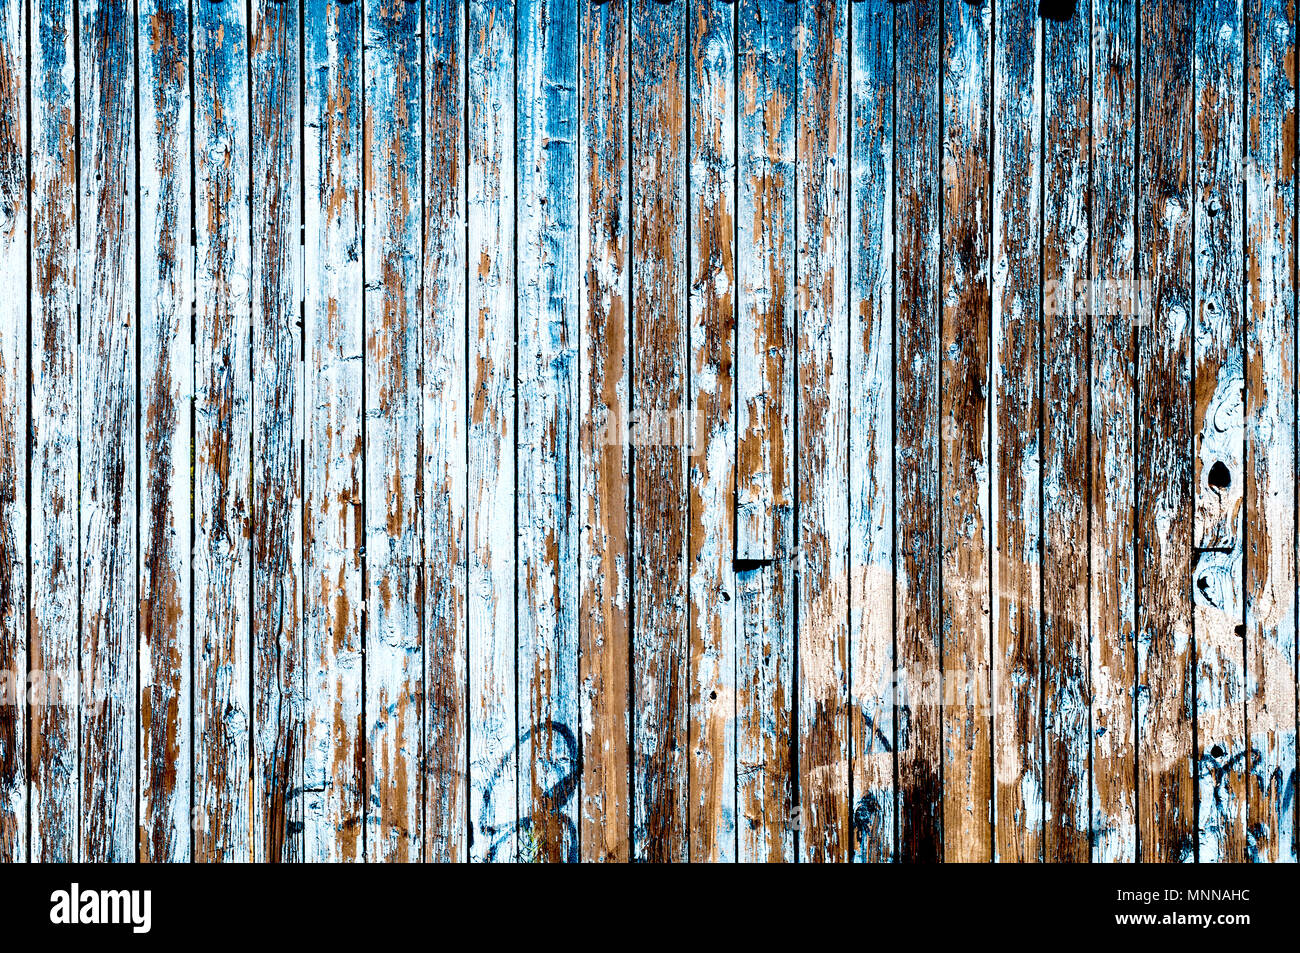 Blaue marode Holzwand; Blue rotten wooden wall - Stock Image